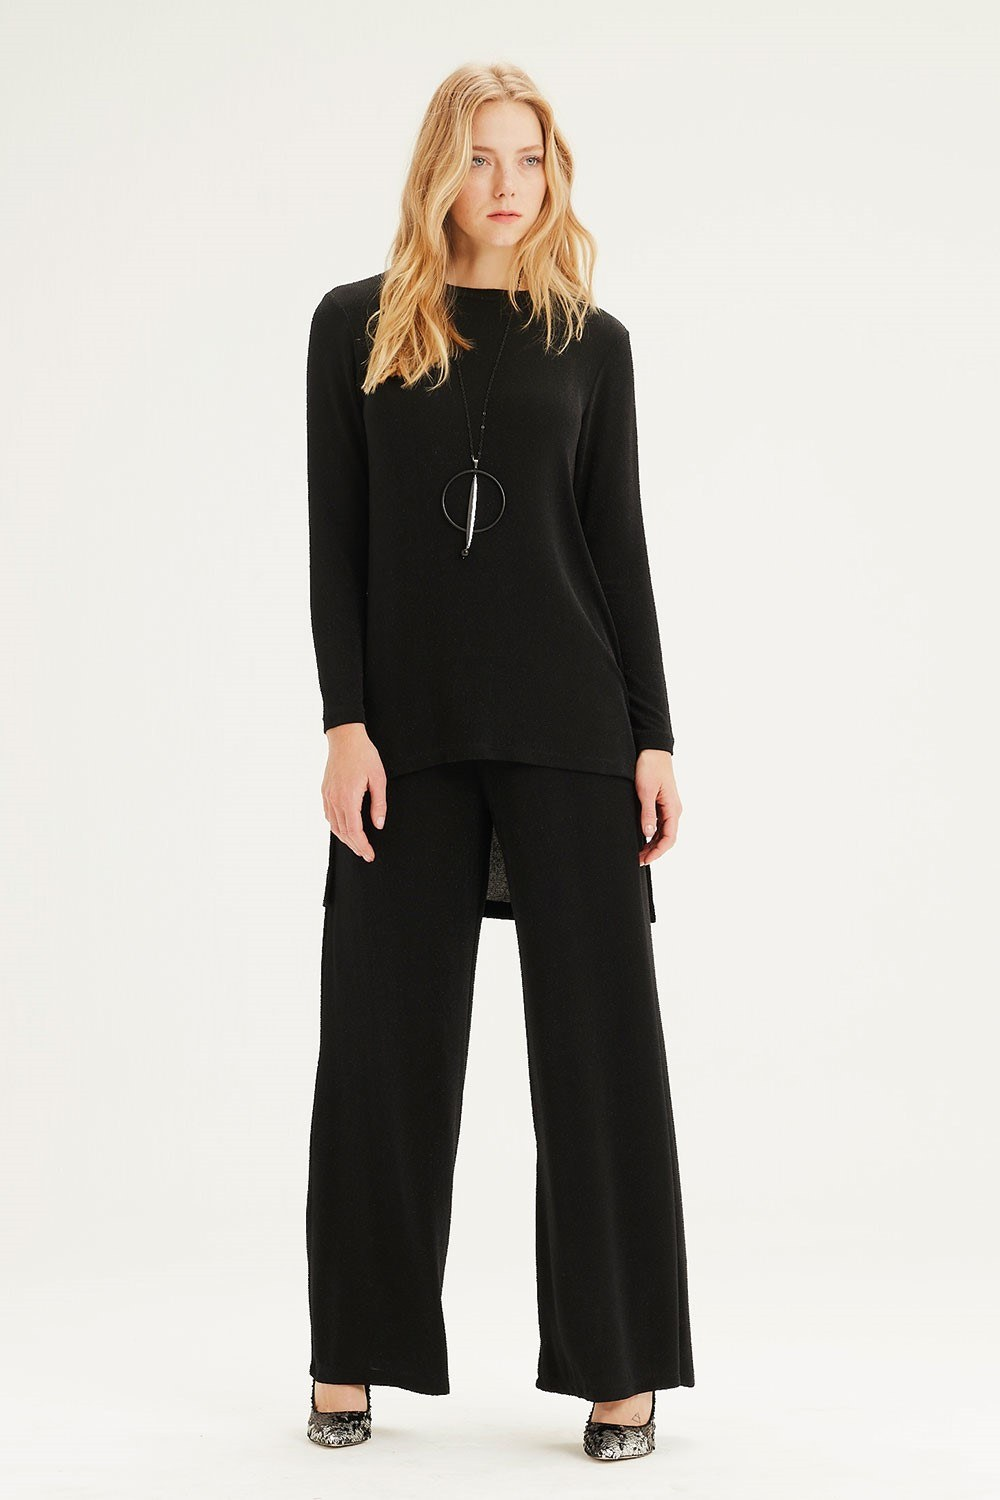 MIZALLE Bell-Bottoms (Black) (1)